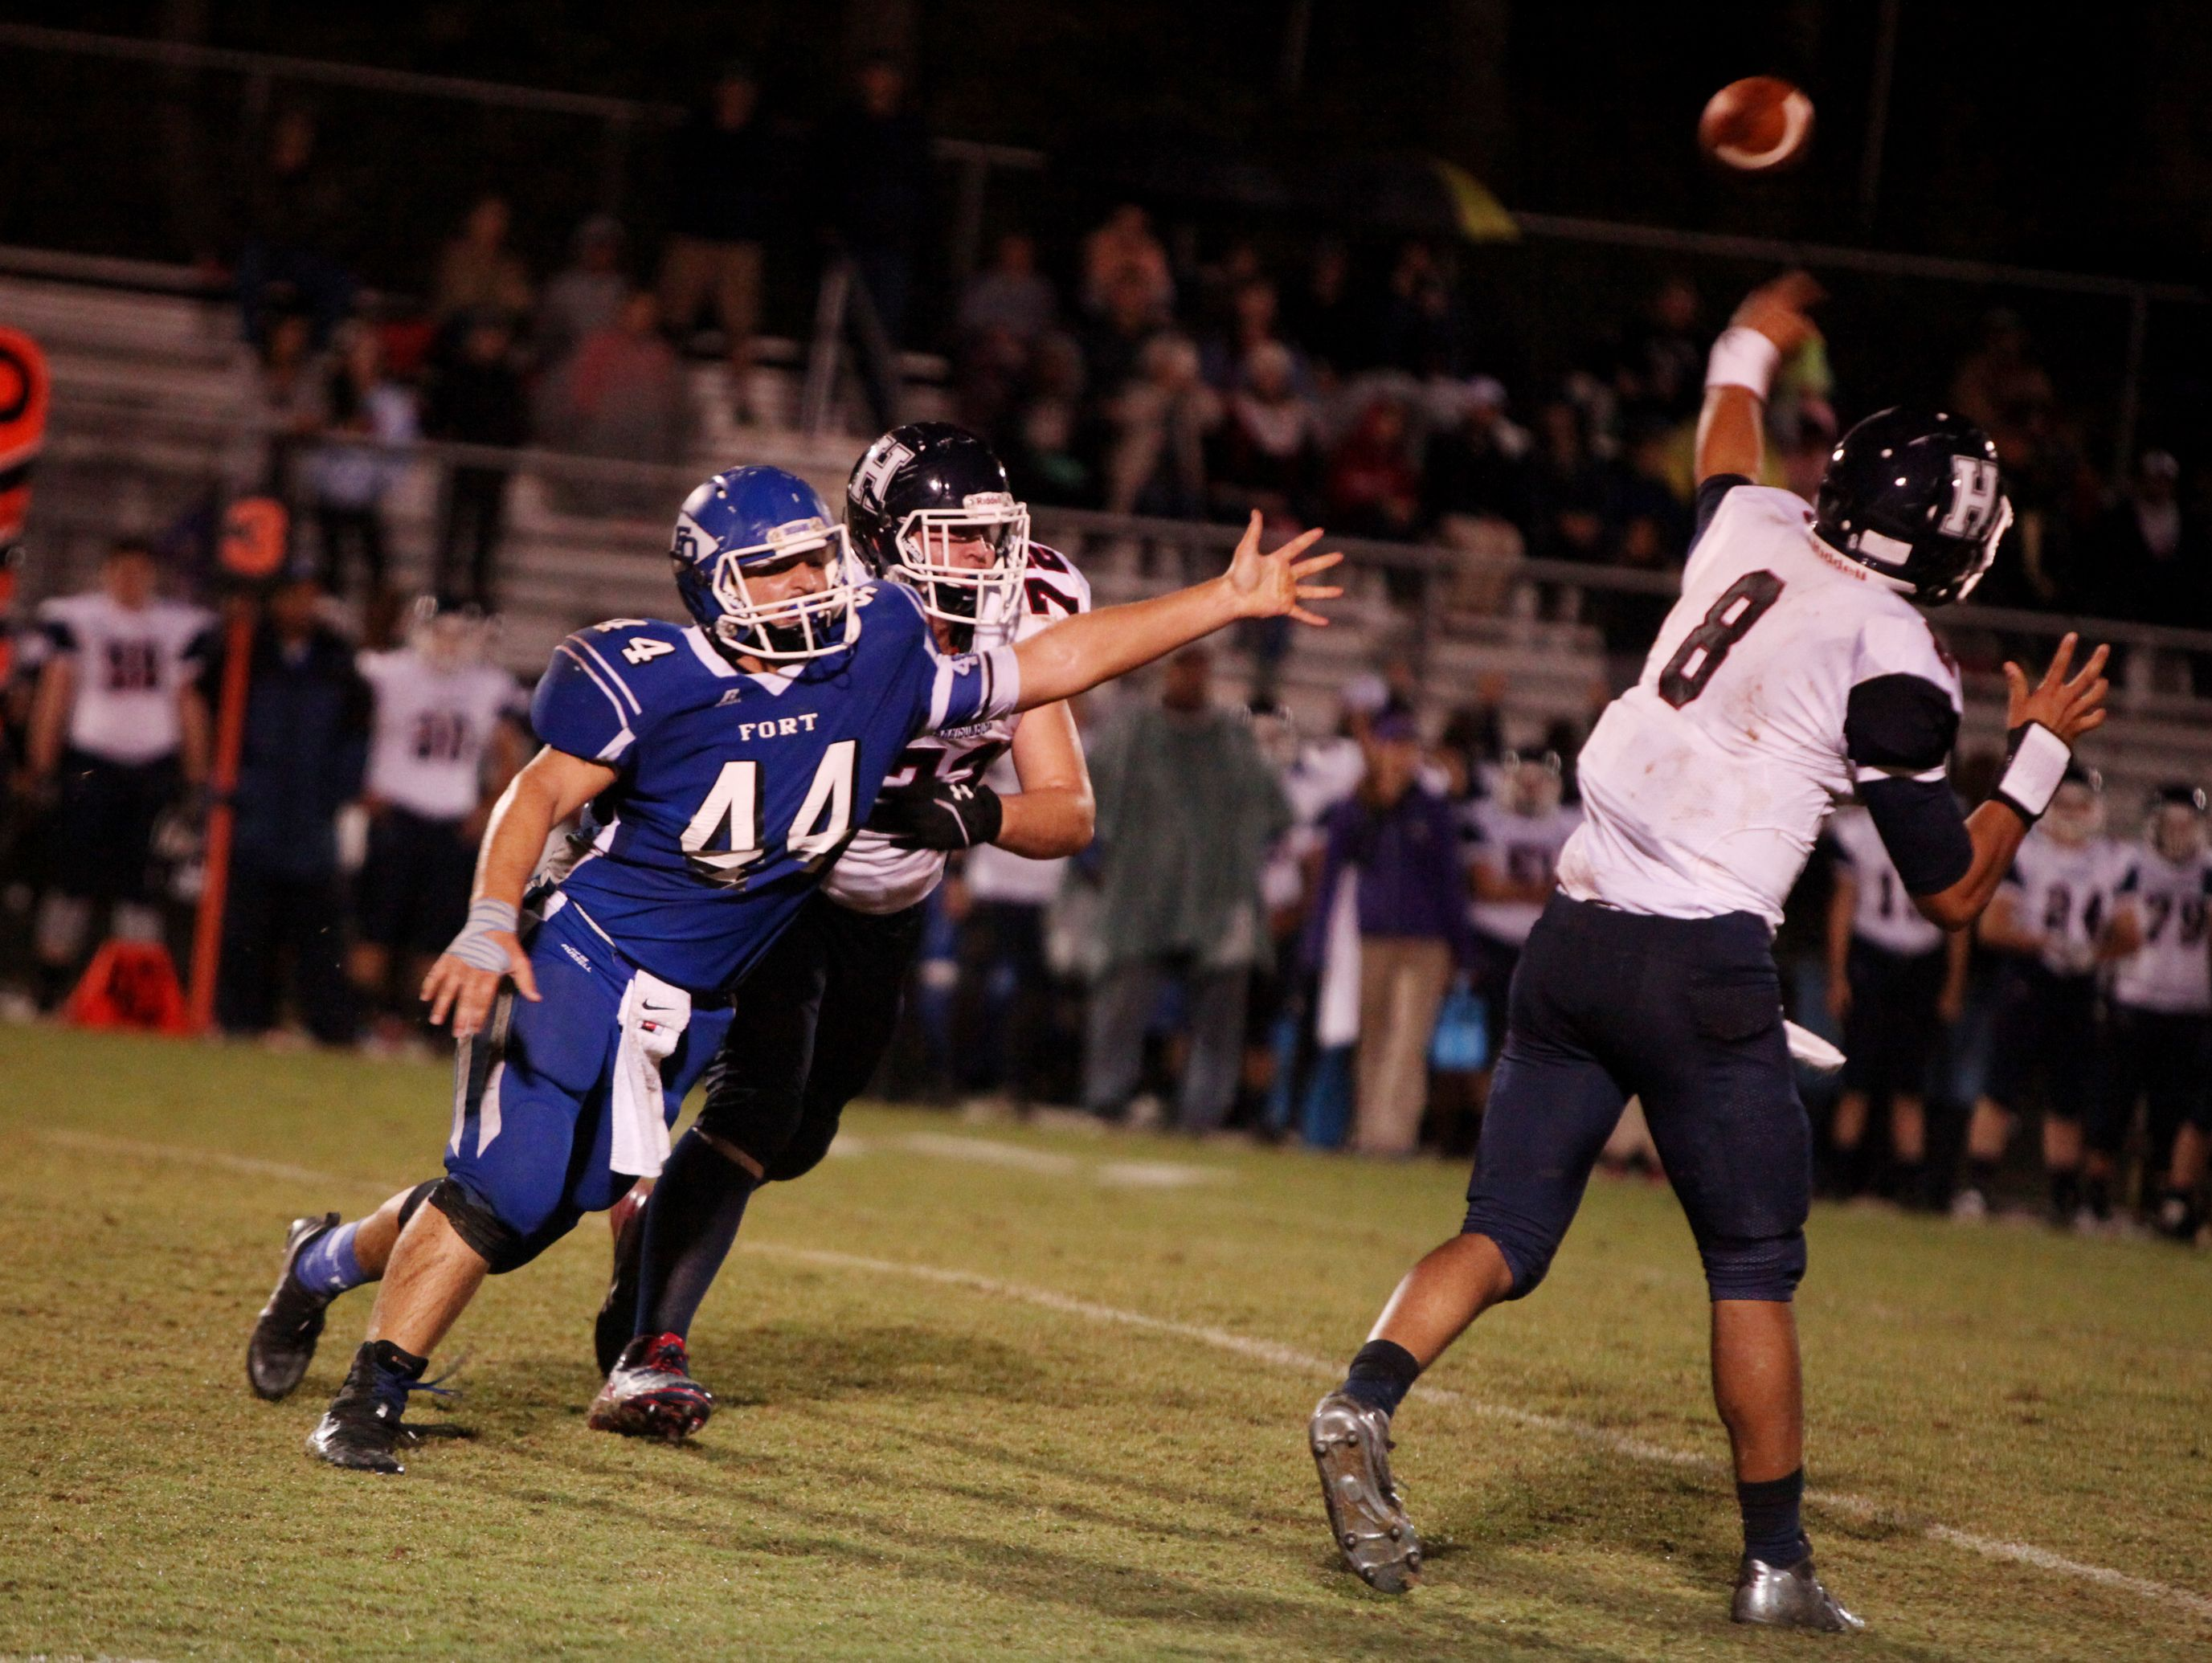 Fort Defiance's Austin Fitzwater tries to block a pass by Harrisonburg's AC White during the second quarter of the game on Friday, Oct. 21, 2016 at Fort Defiance.